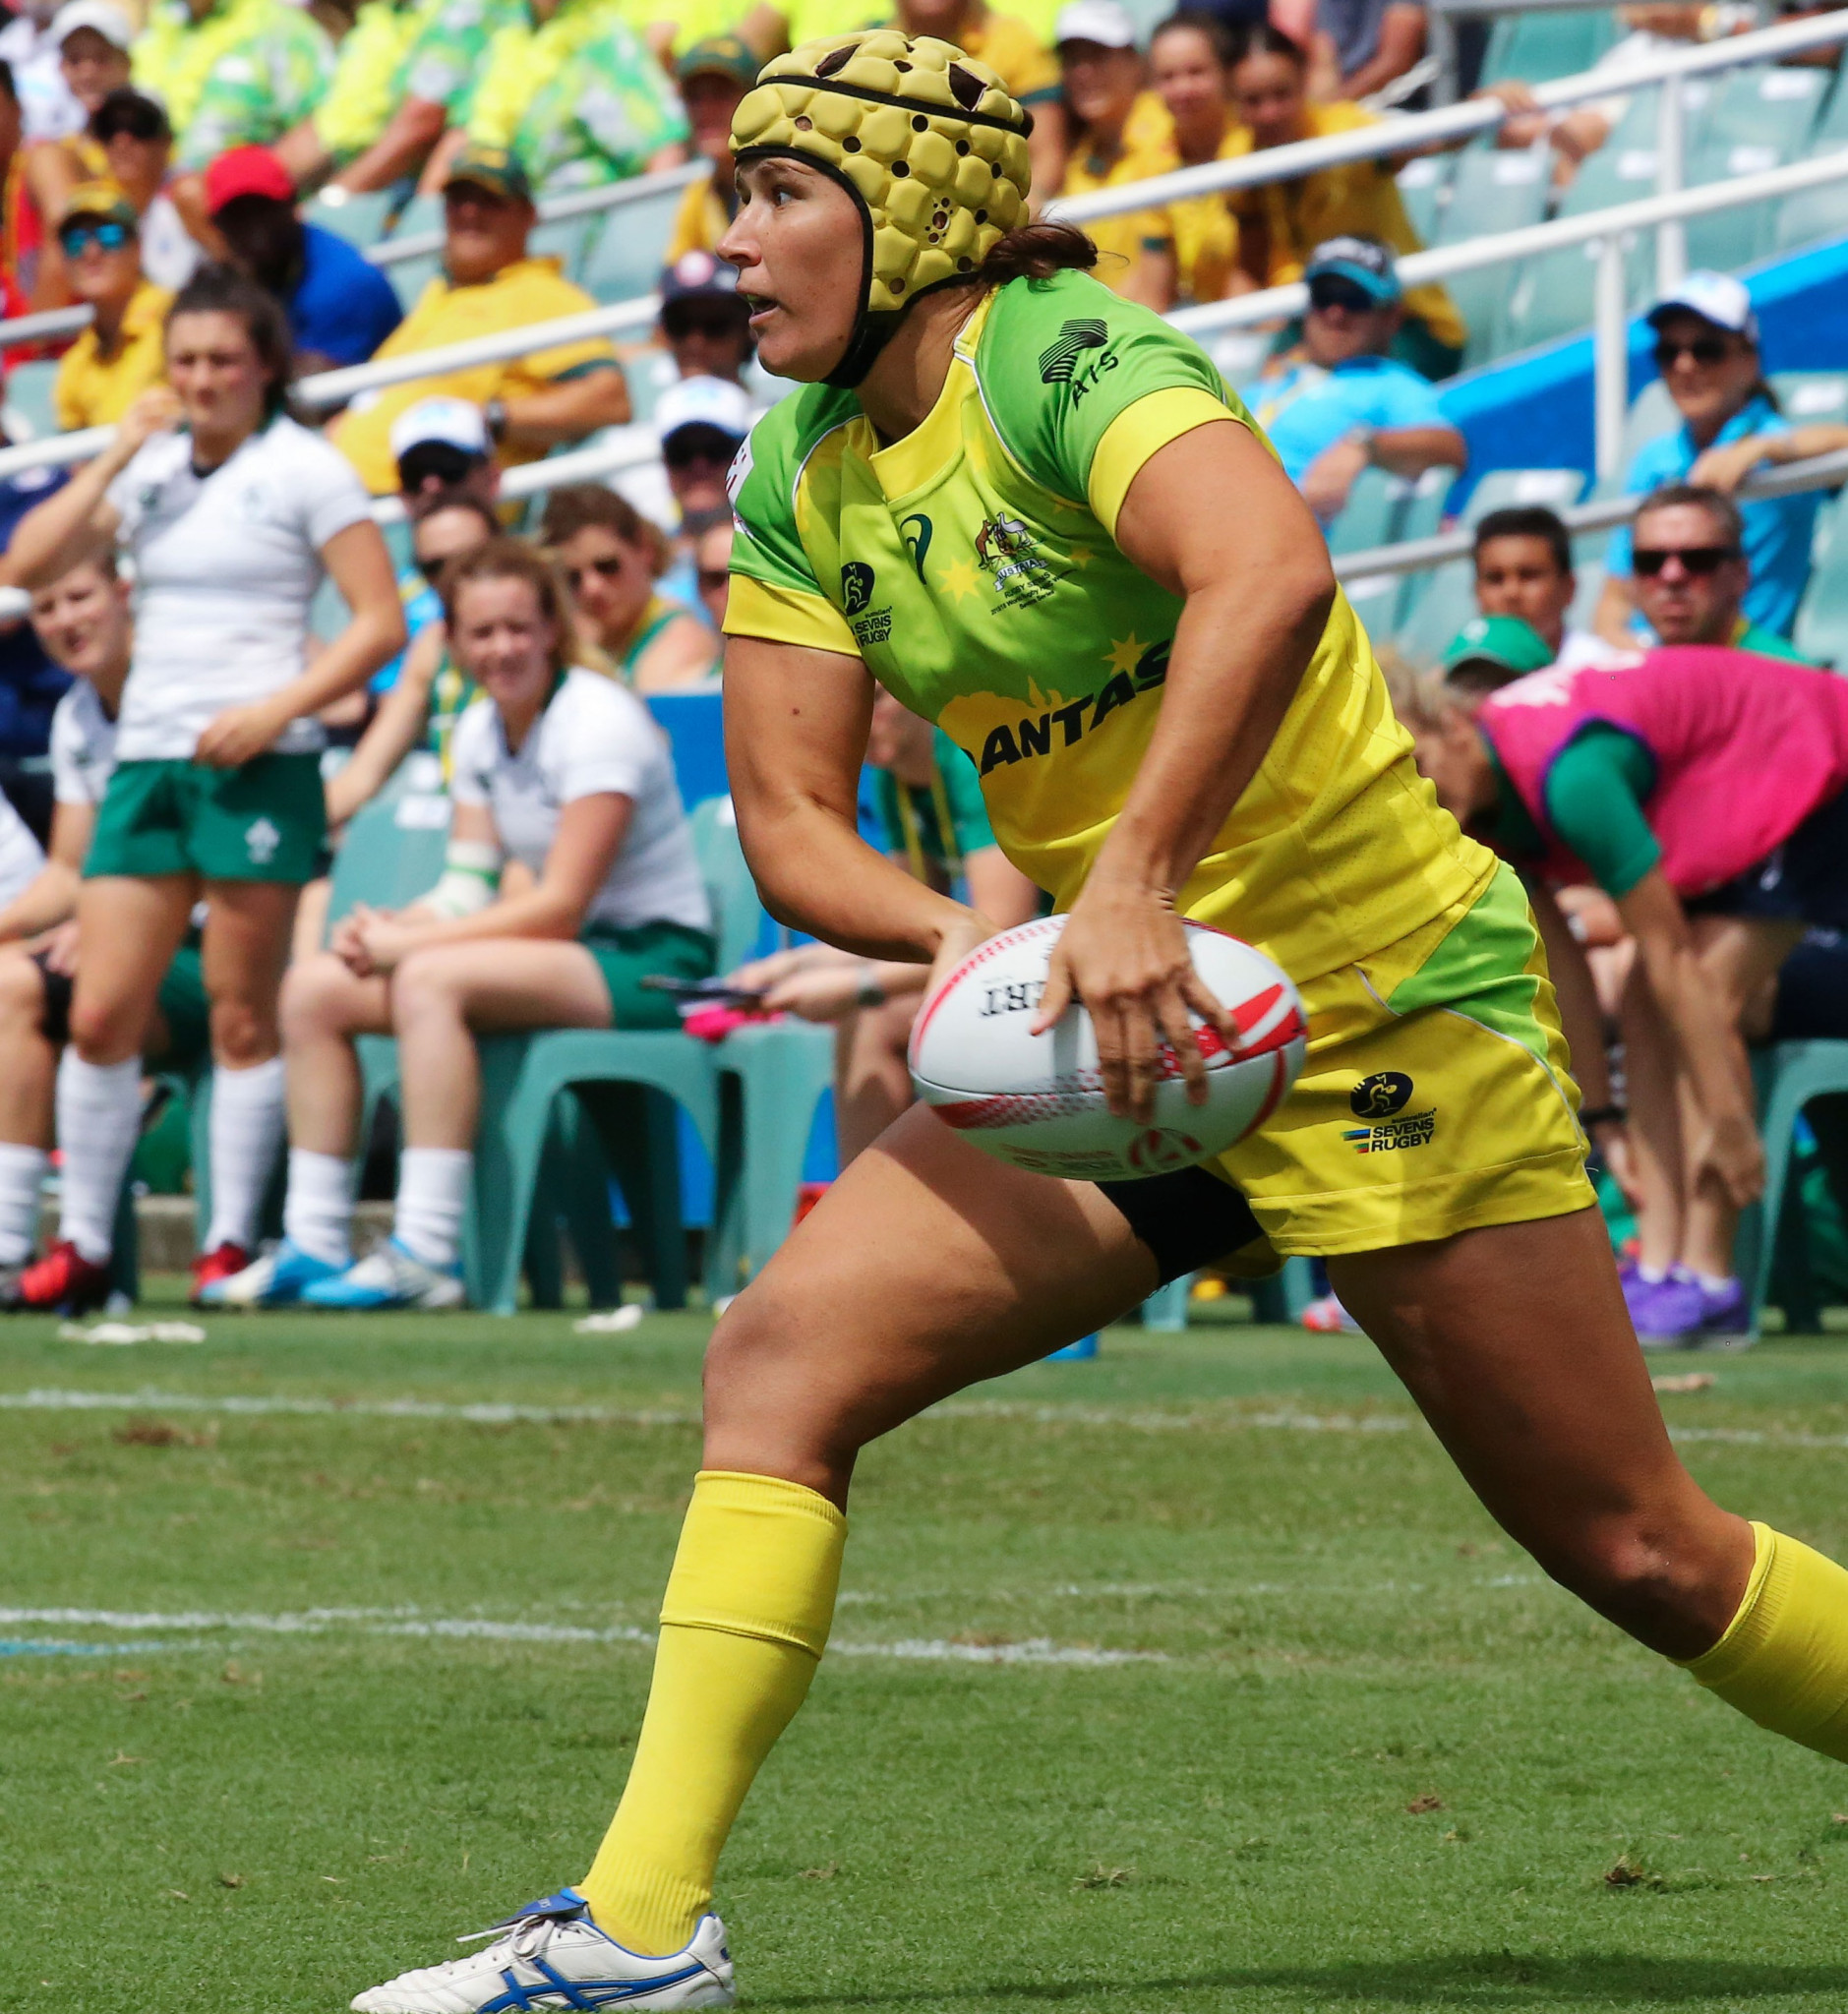 Shannon Parry helped lead the Australian women's sevens team to the Olympic gold medal at Rio 2016 ©Getty Images